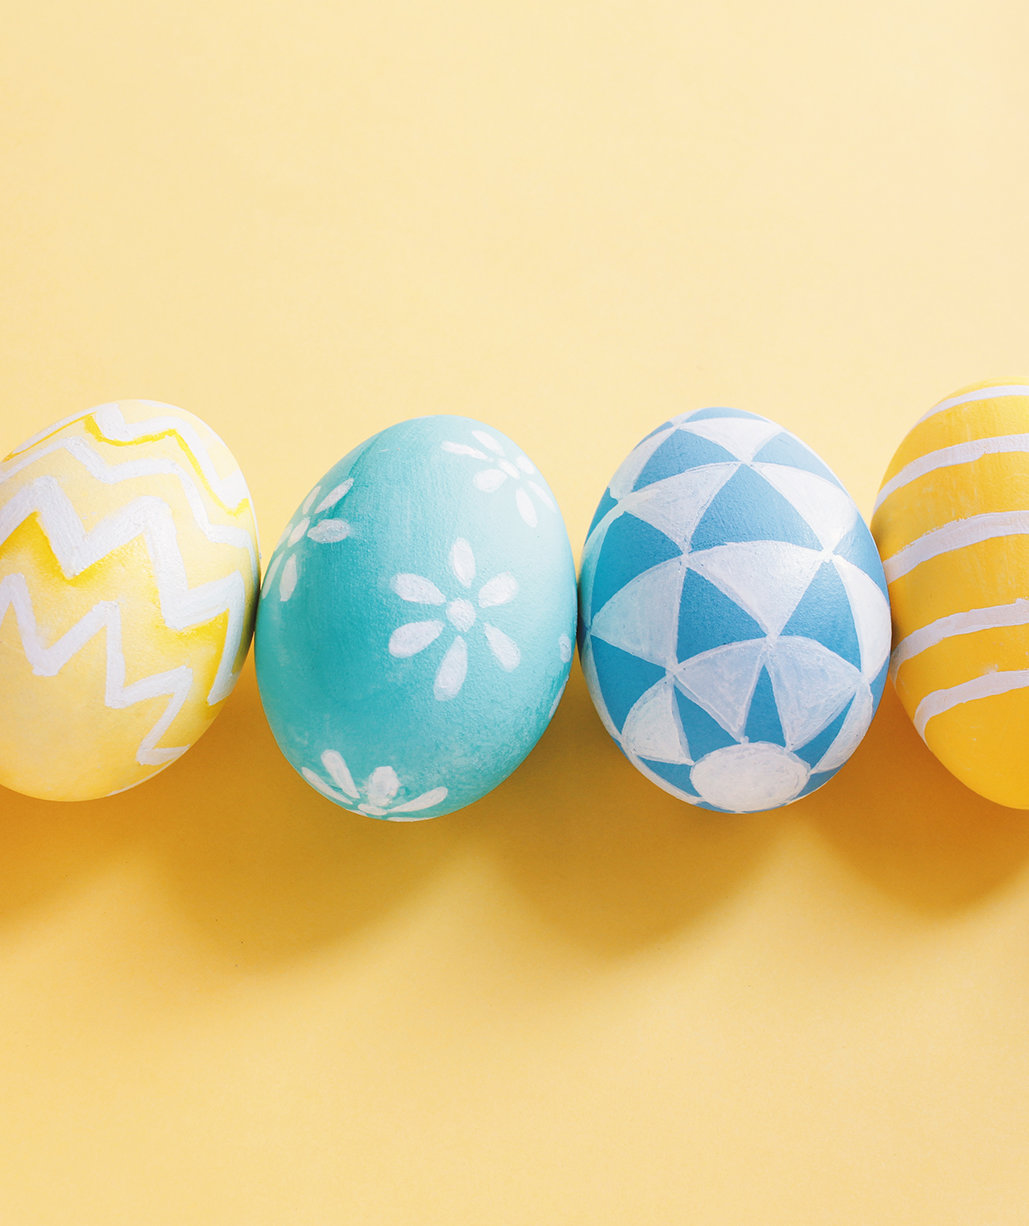 5 Genius Easter Egg Decorating Hacks